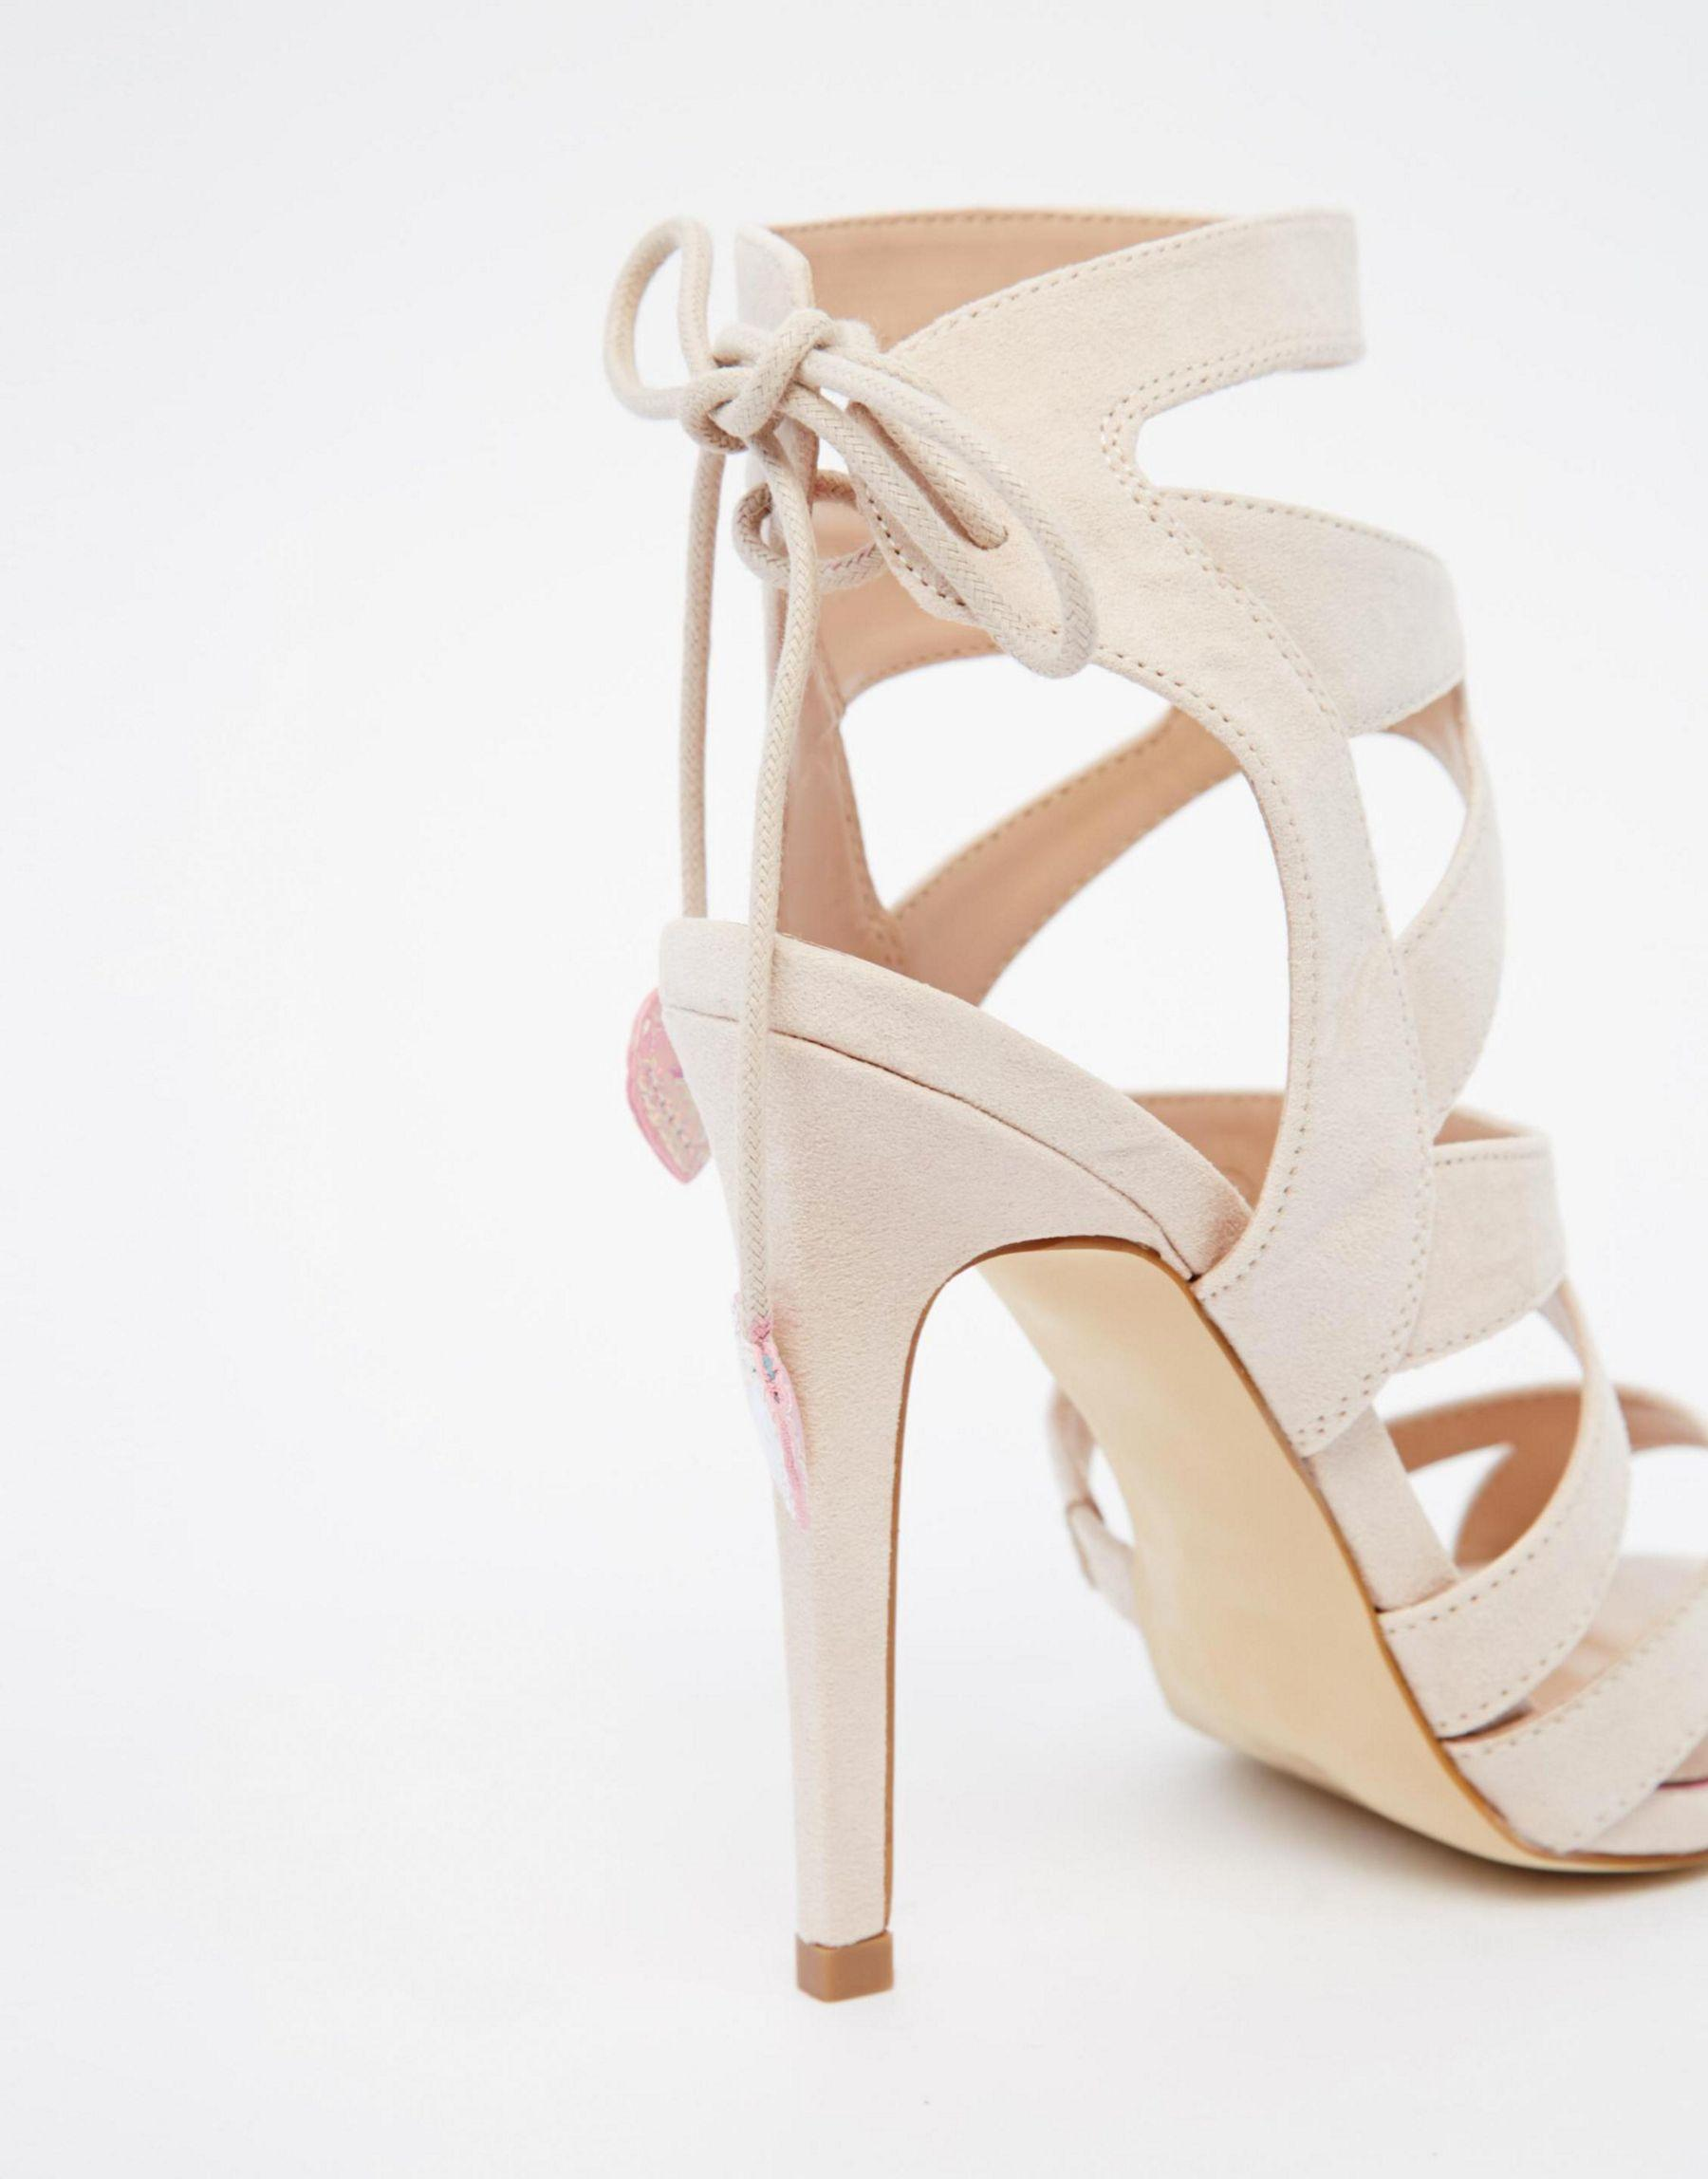 Miss Kg Frenchy Caged Wedding Sandal (£64) liked on